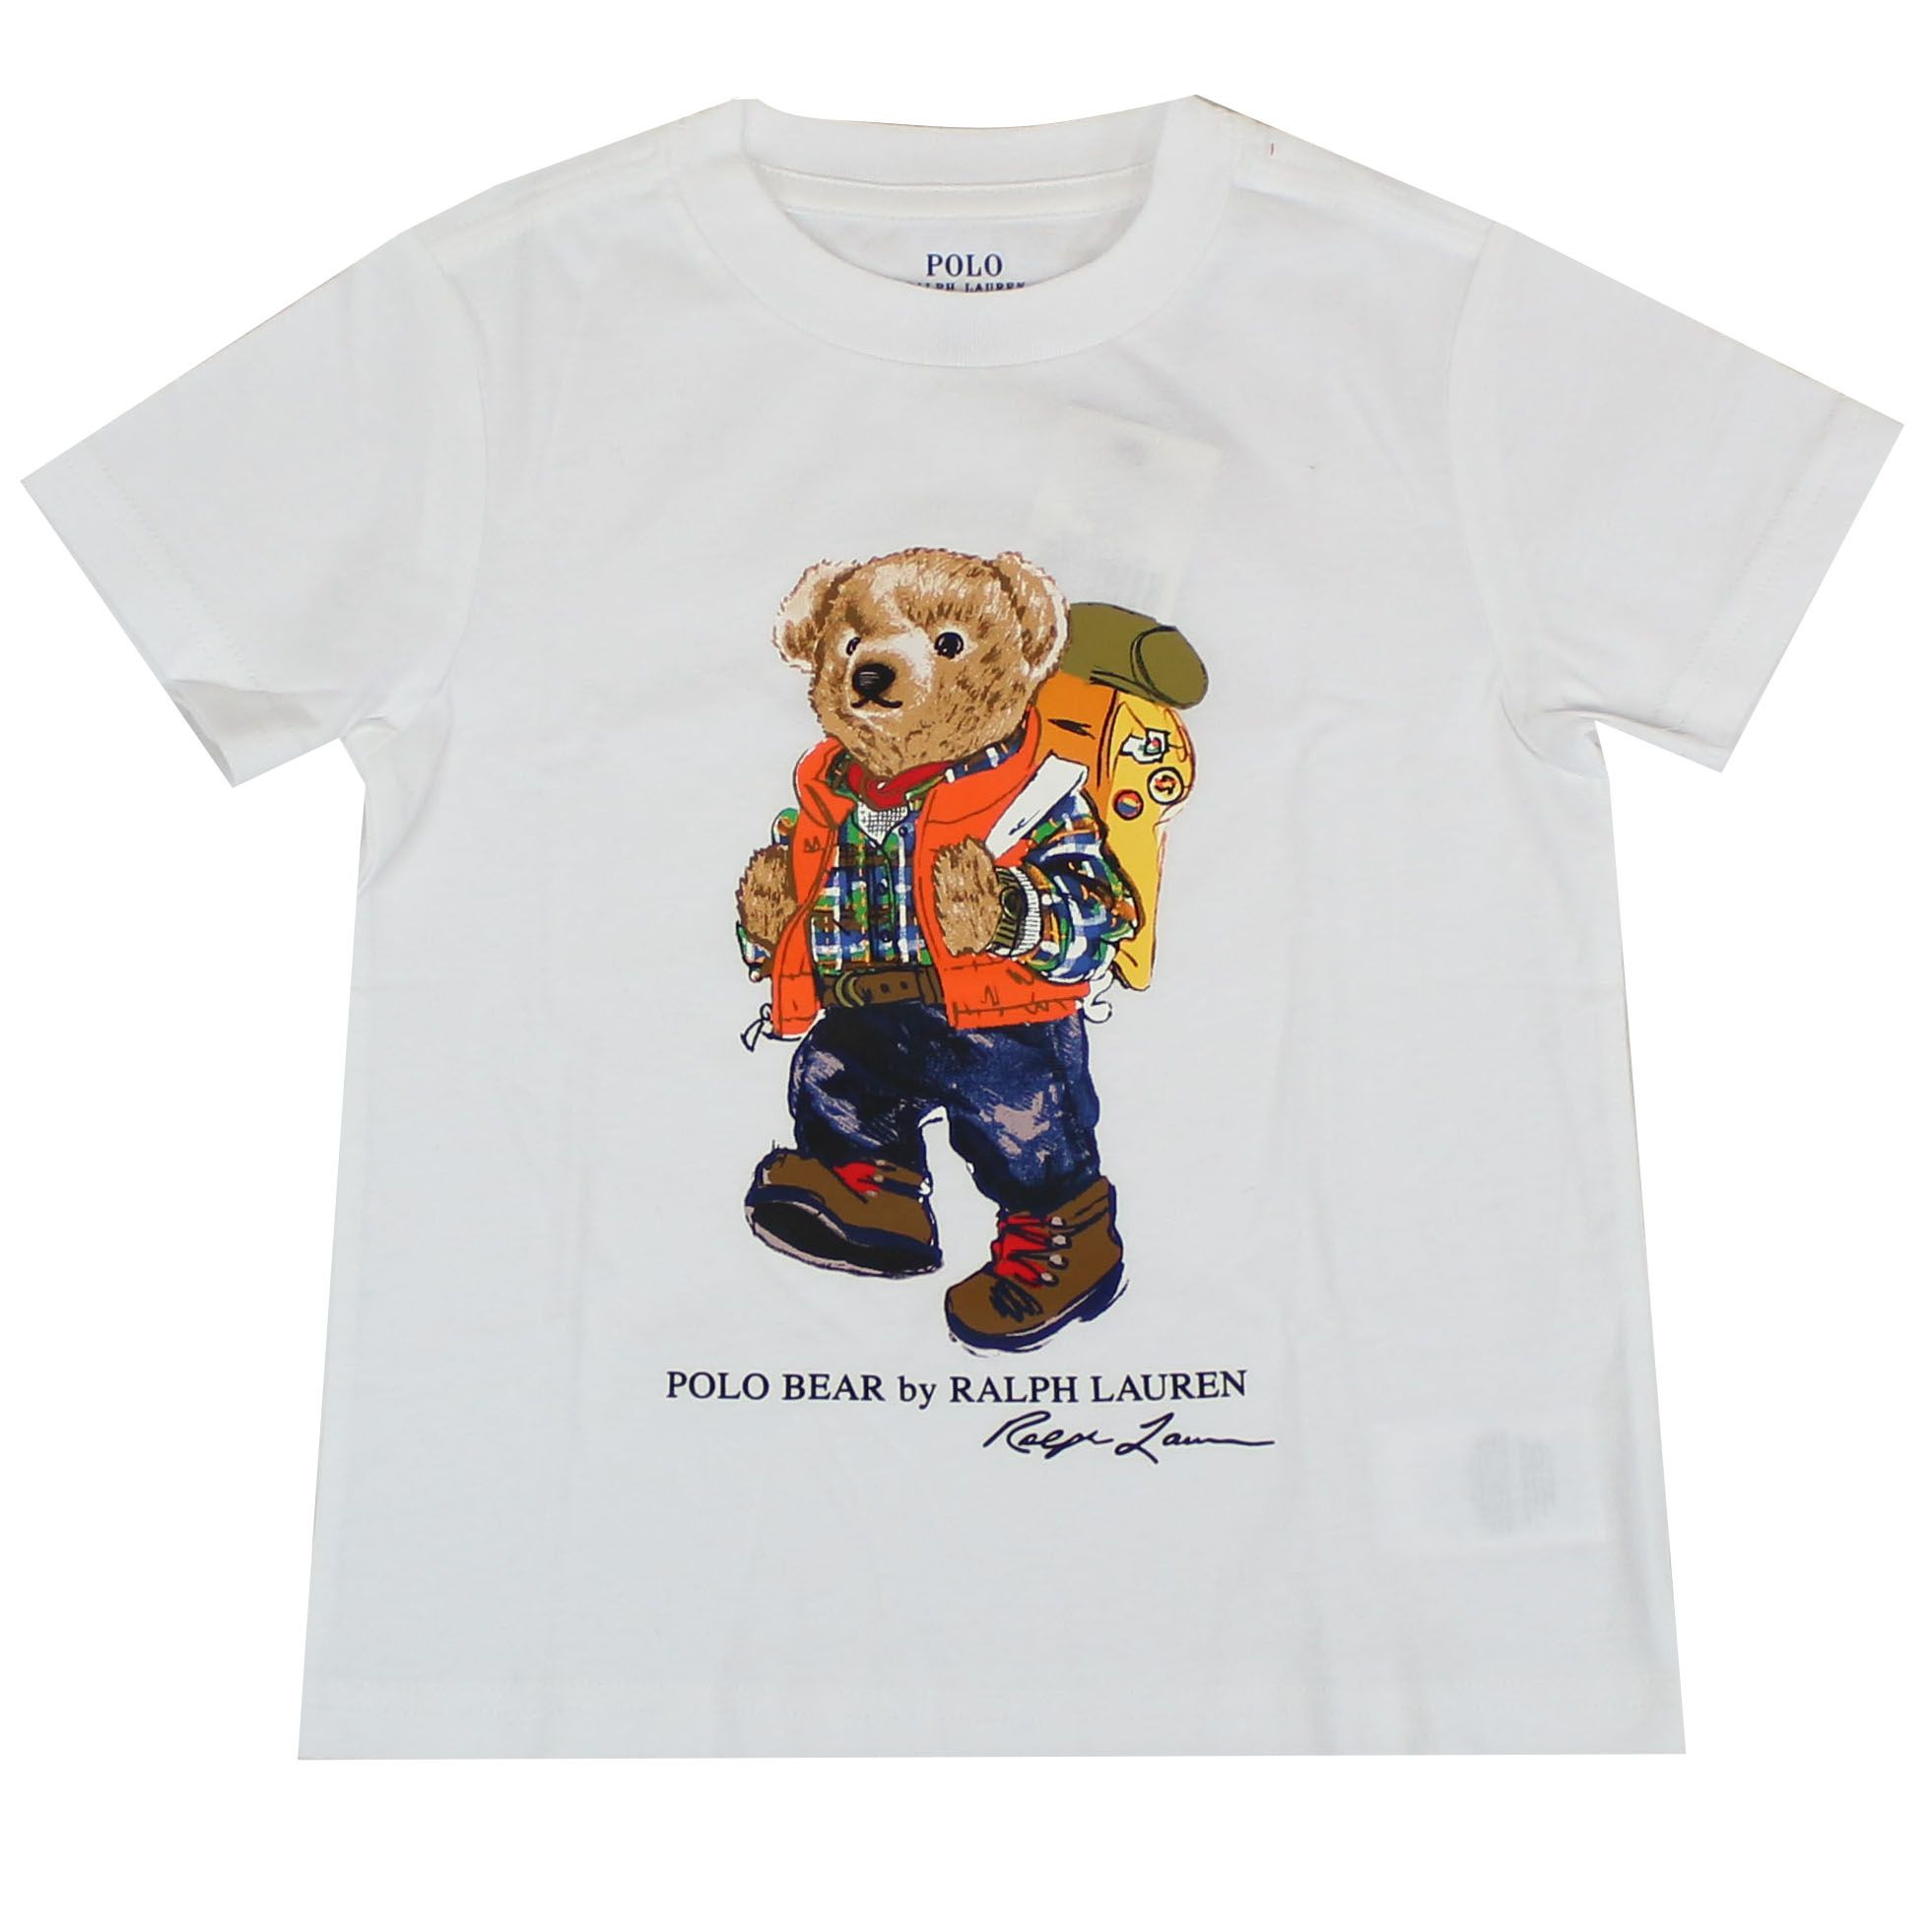 the latest fb291 8a629 T-shirt stampa orso trekking